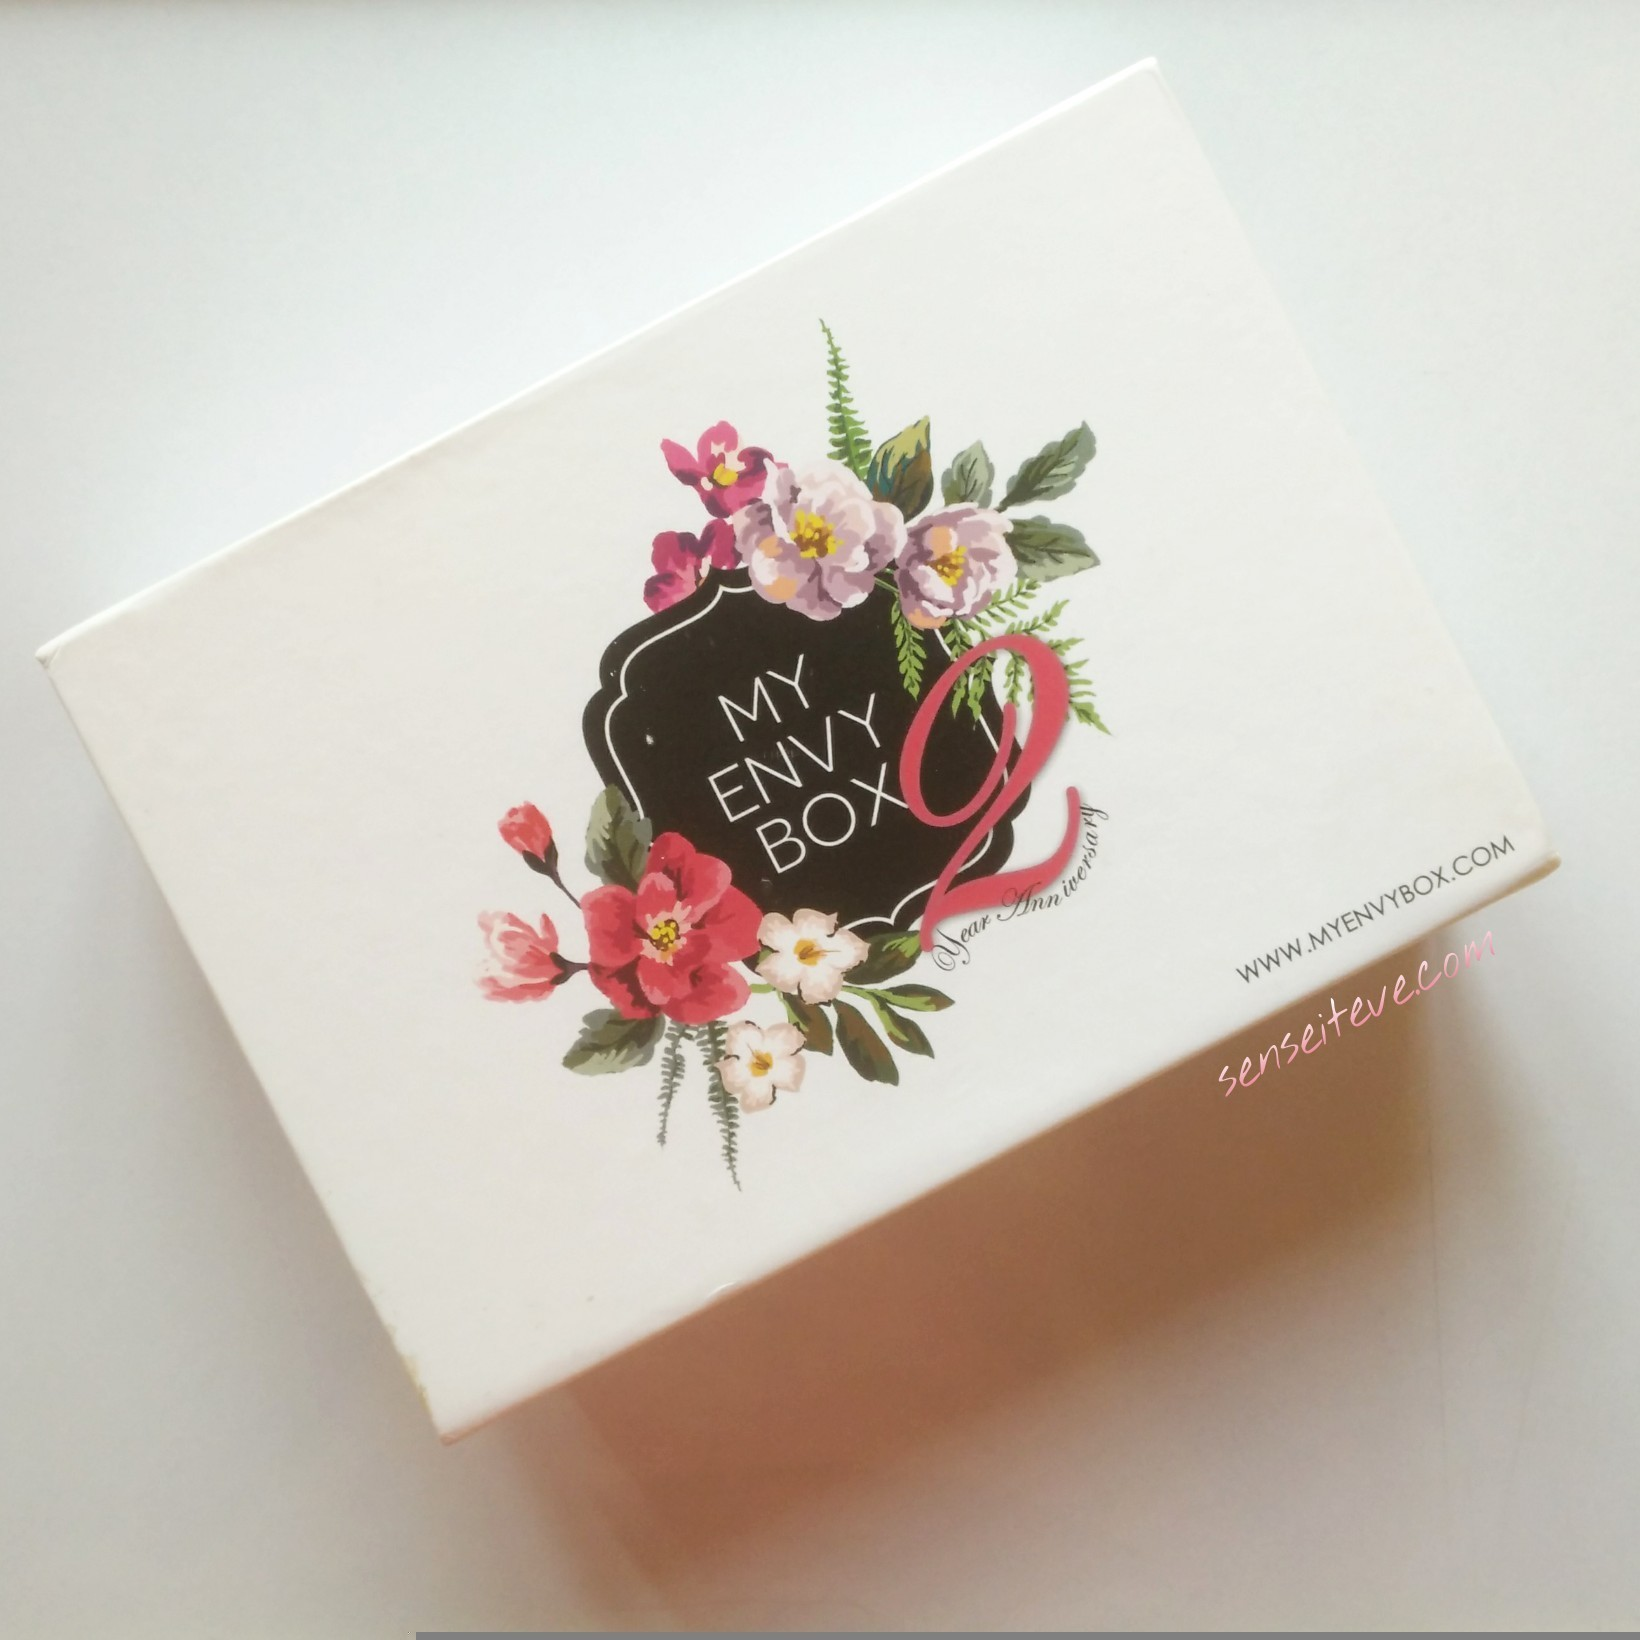 My Envy Box October 2015